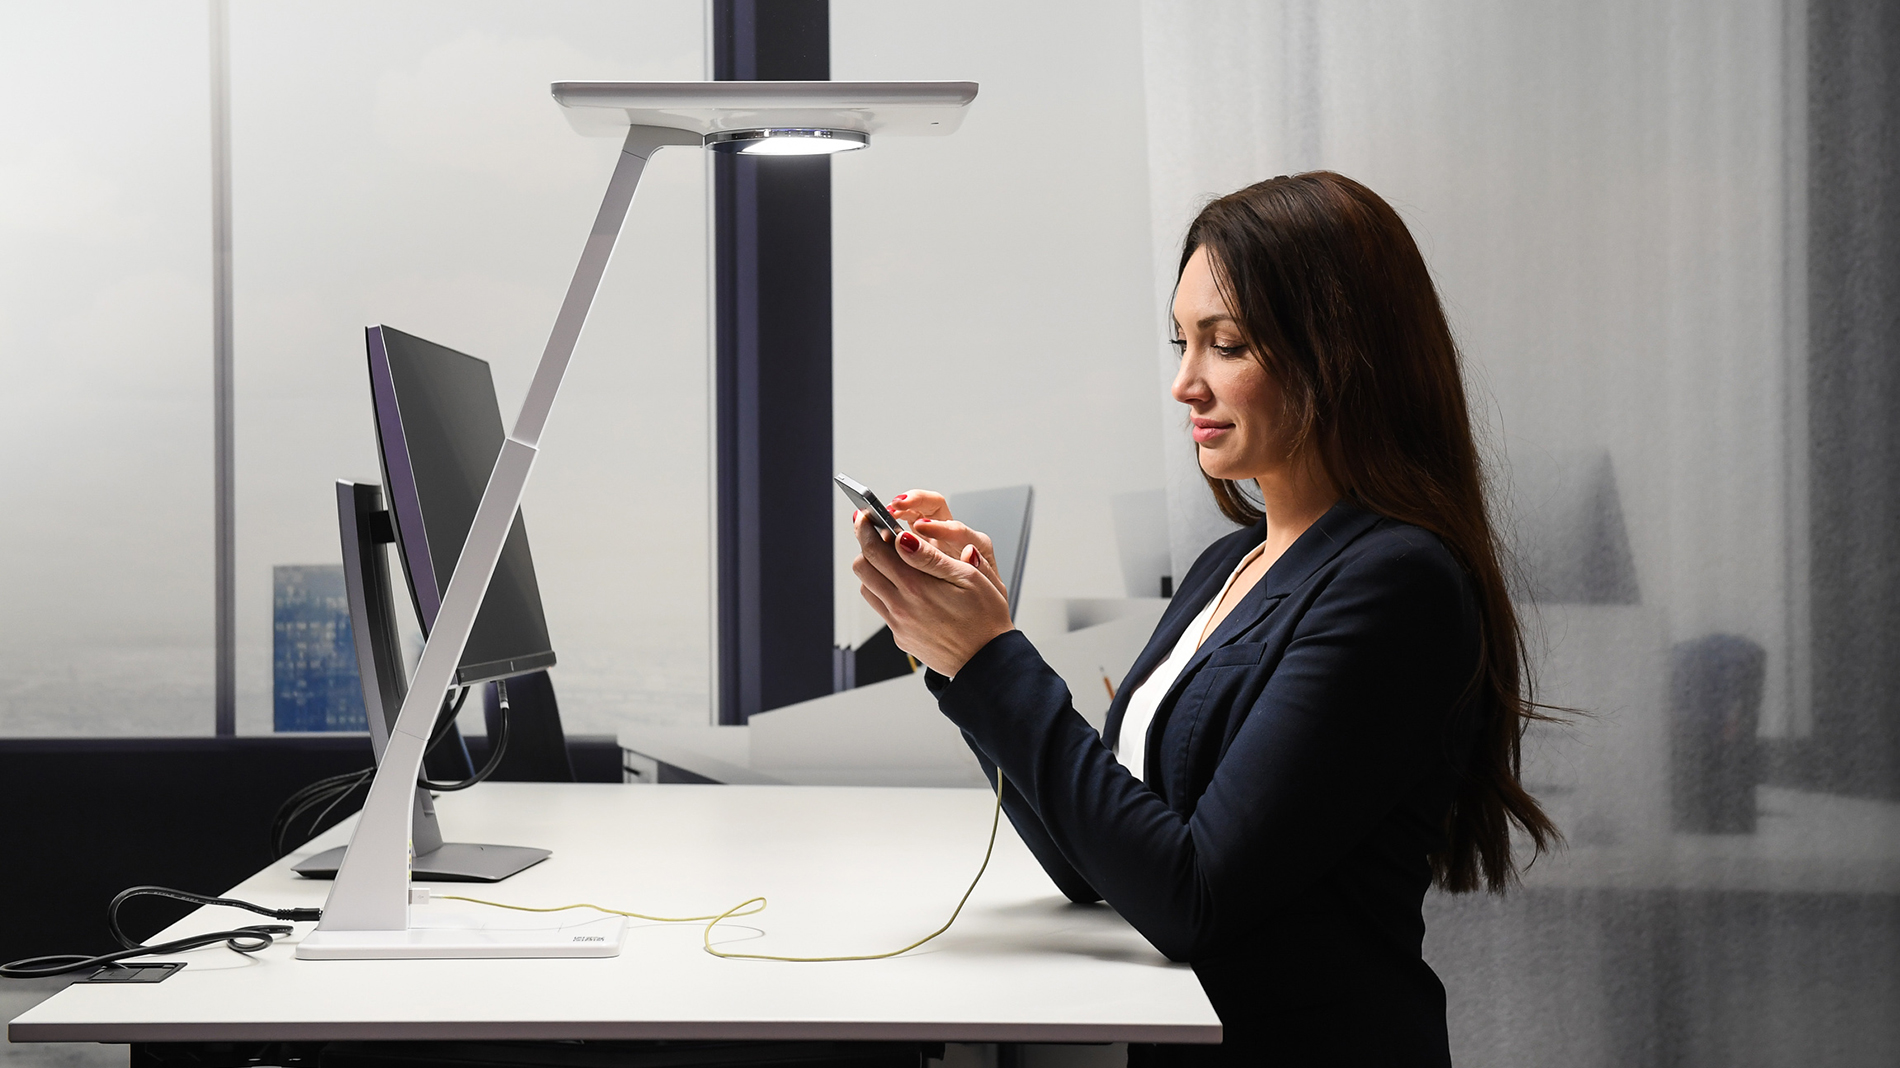 A woman is standing at a desk lamp